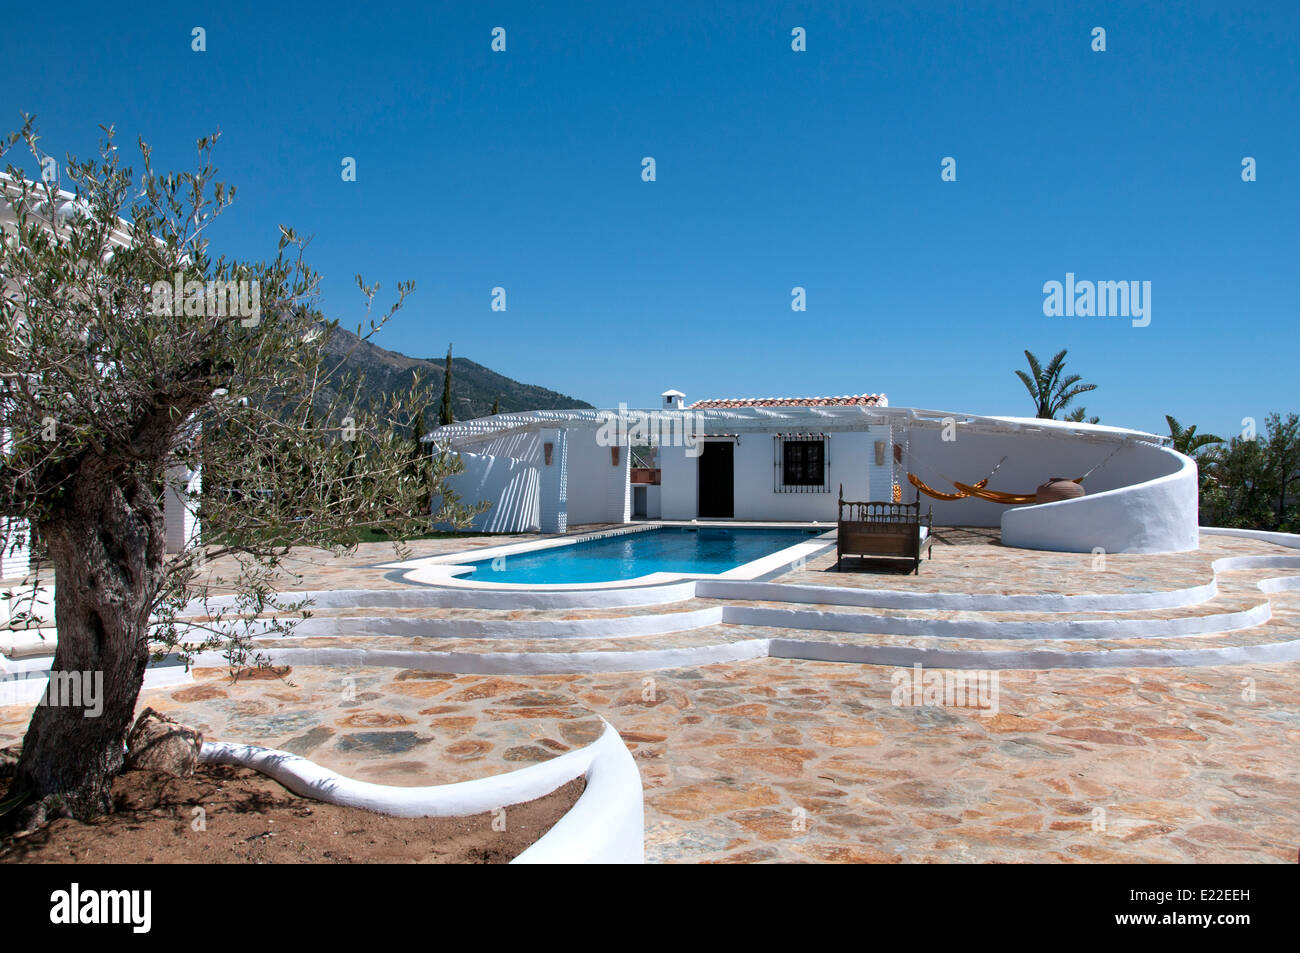 Canillas De Aceituno Malaga Spain Spanish White House Villa Estate Stock Photo Royalty Free